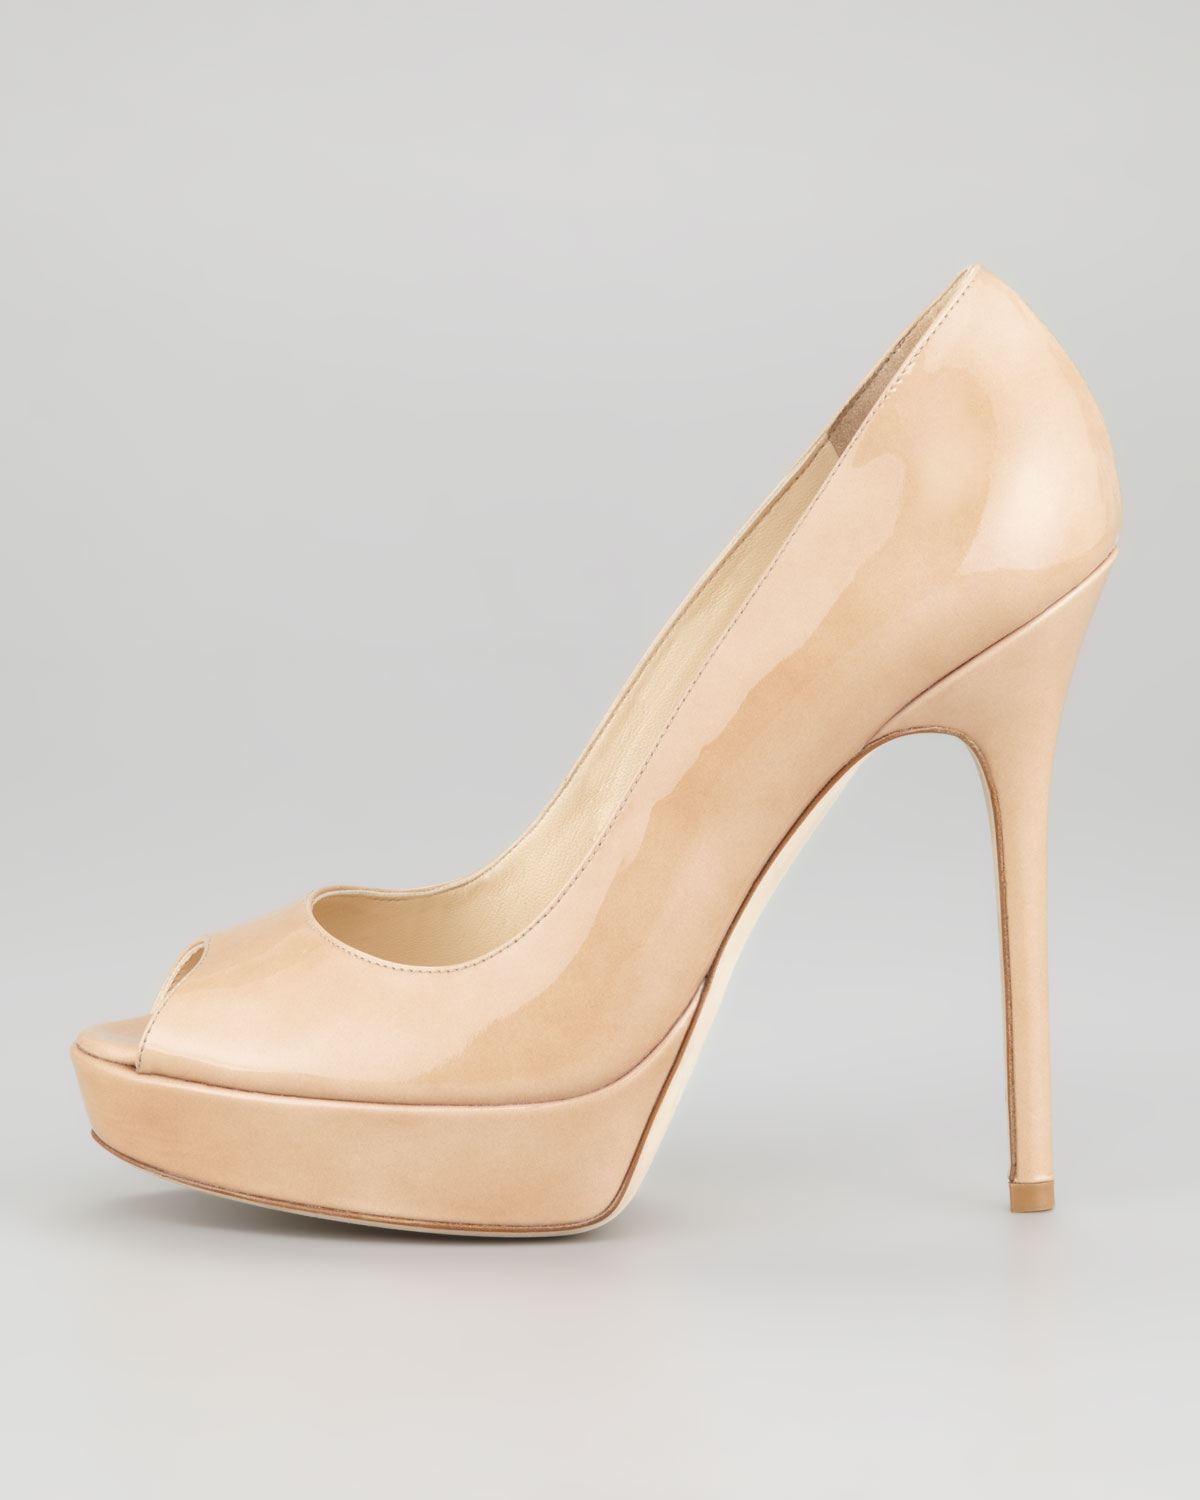 cf4b92fc1897 Lyst - Jimmy Choo Crown Peep Toe Pump Nude in Natural